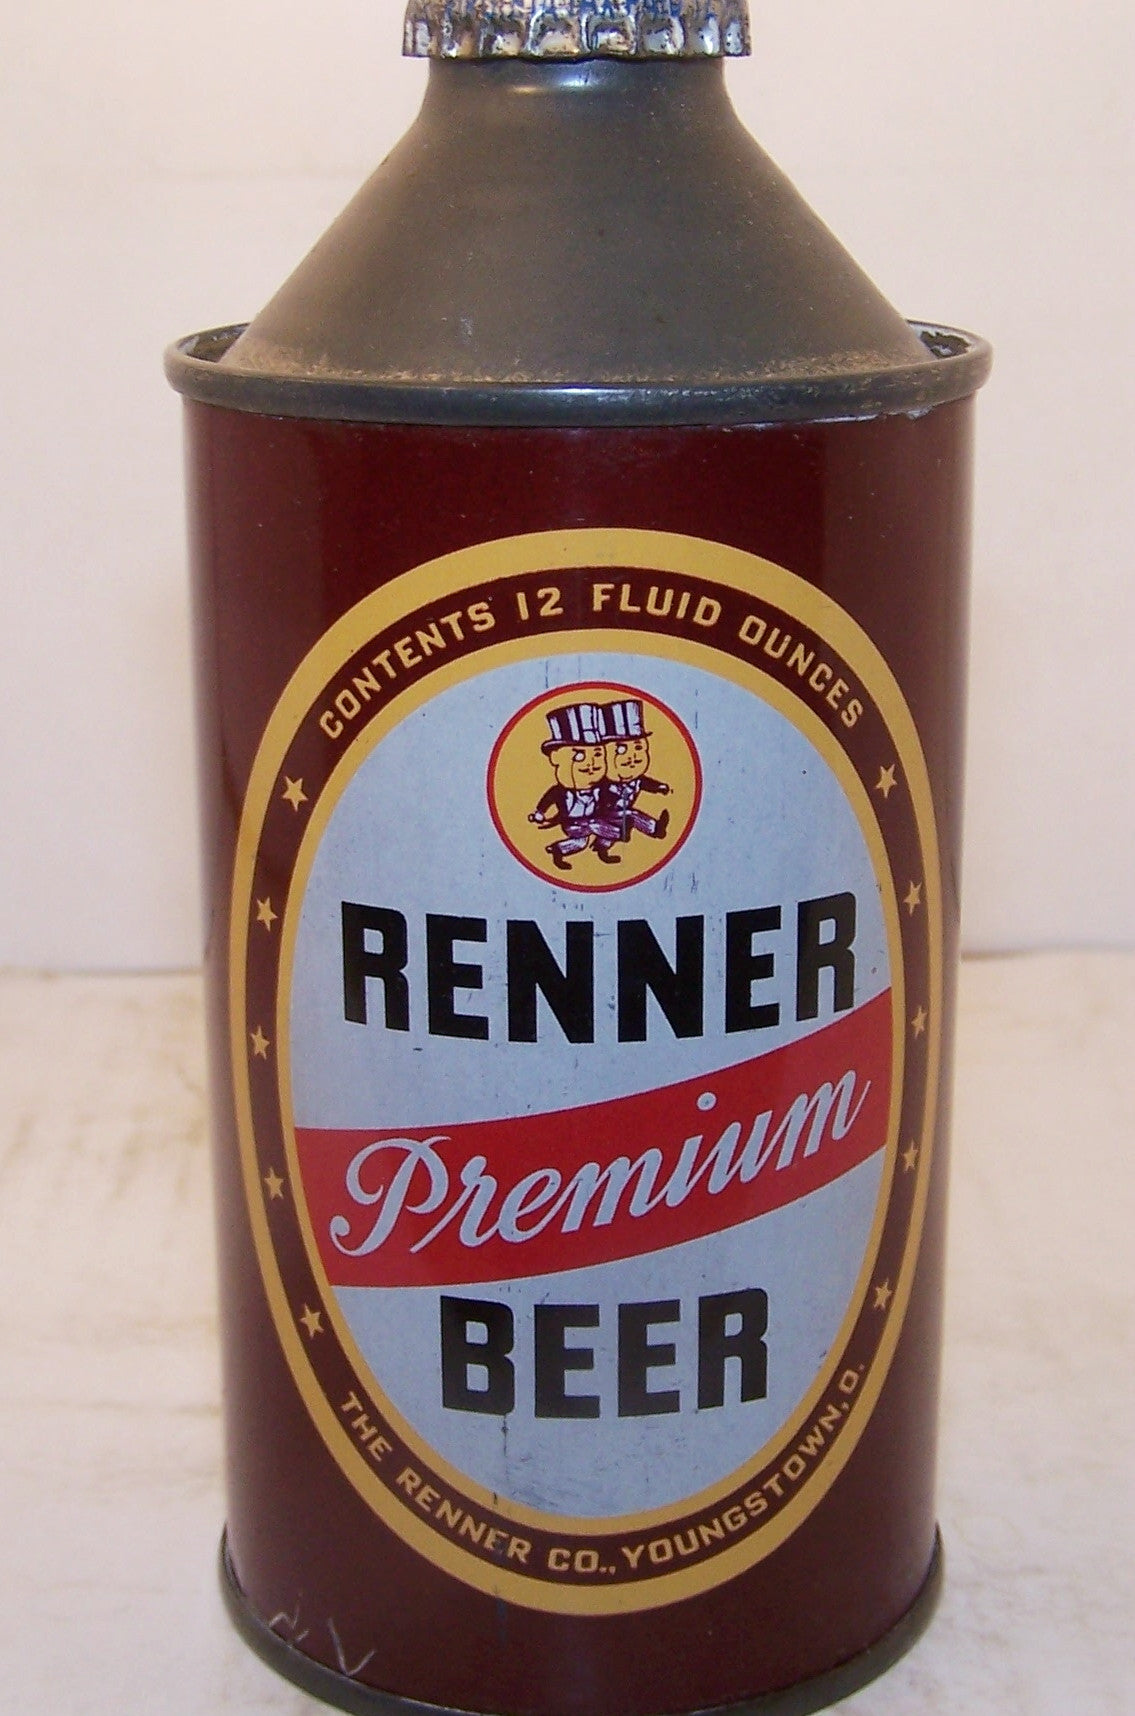 Renner Premium Beer, USBC 181-27 Non-IRTP, Grade 1/1- Sold on 02/27/16